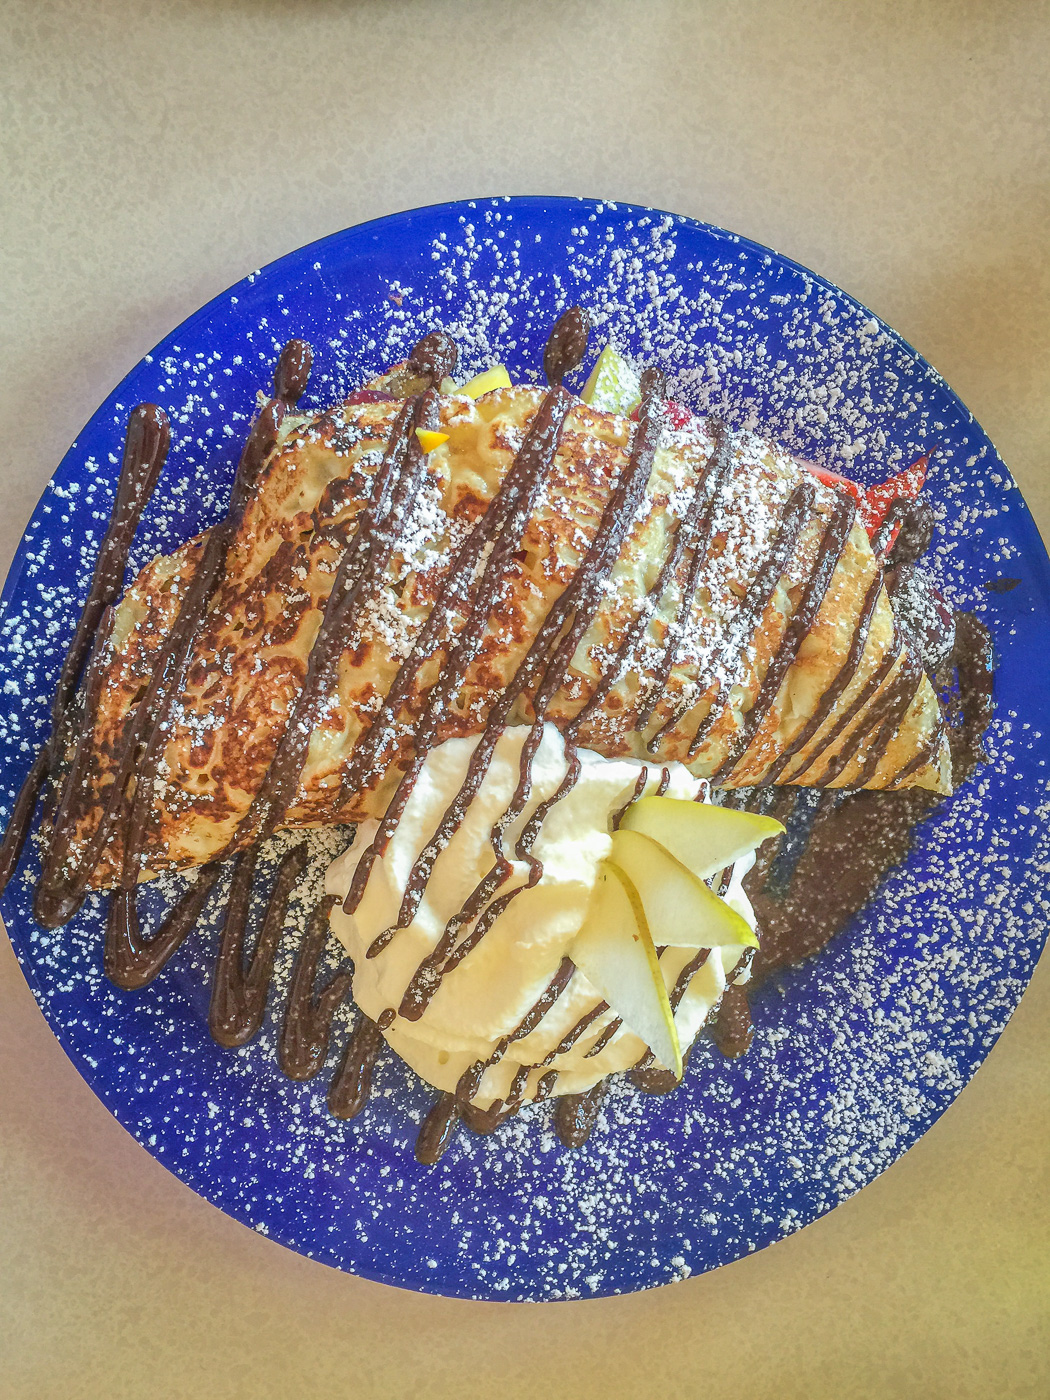 Blue plate with crepe and whipped cream drizzled with chocolate